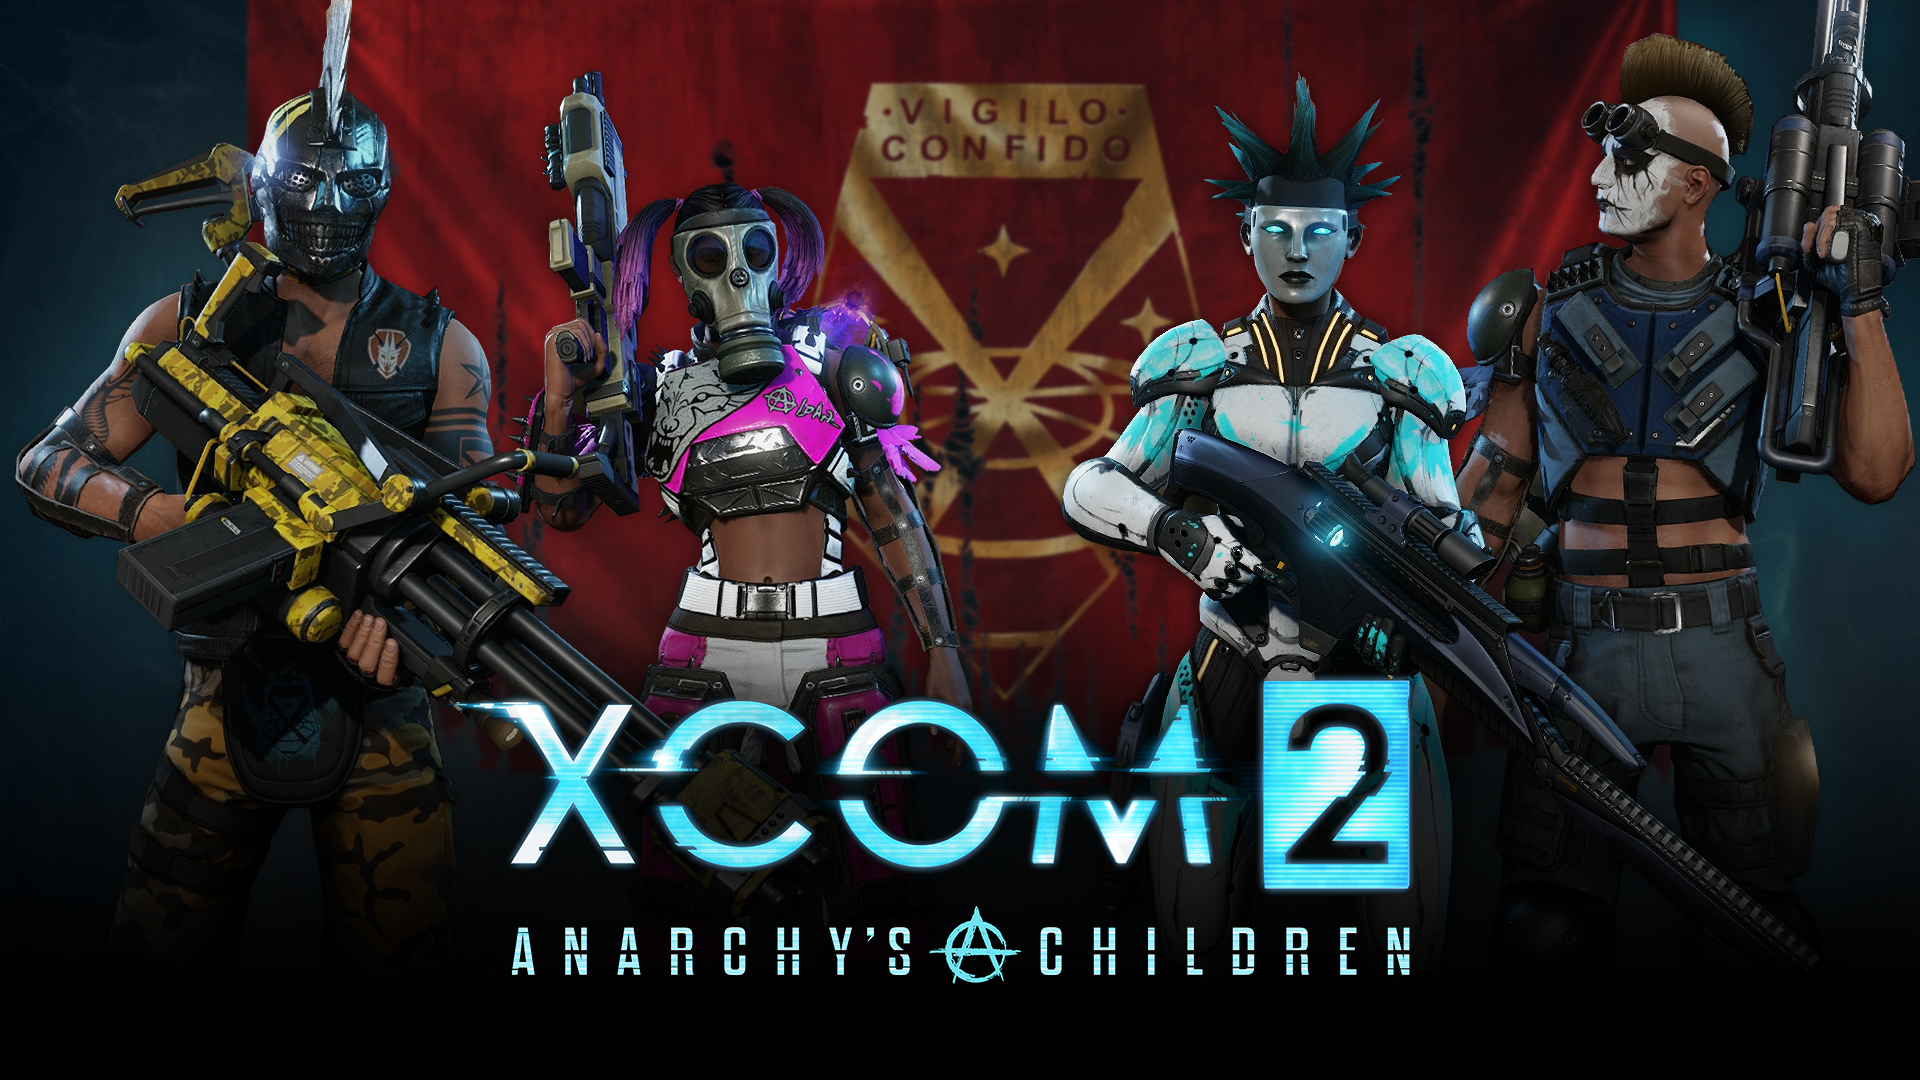 XCOM 2's first DLC offers tons of soldier customization